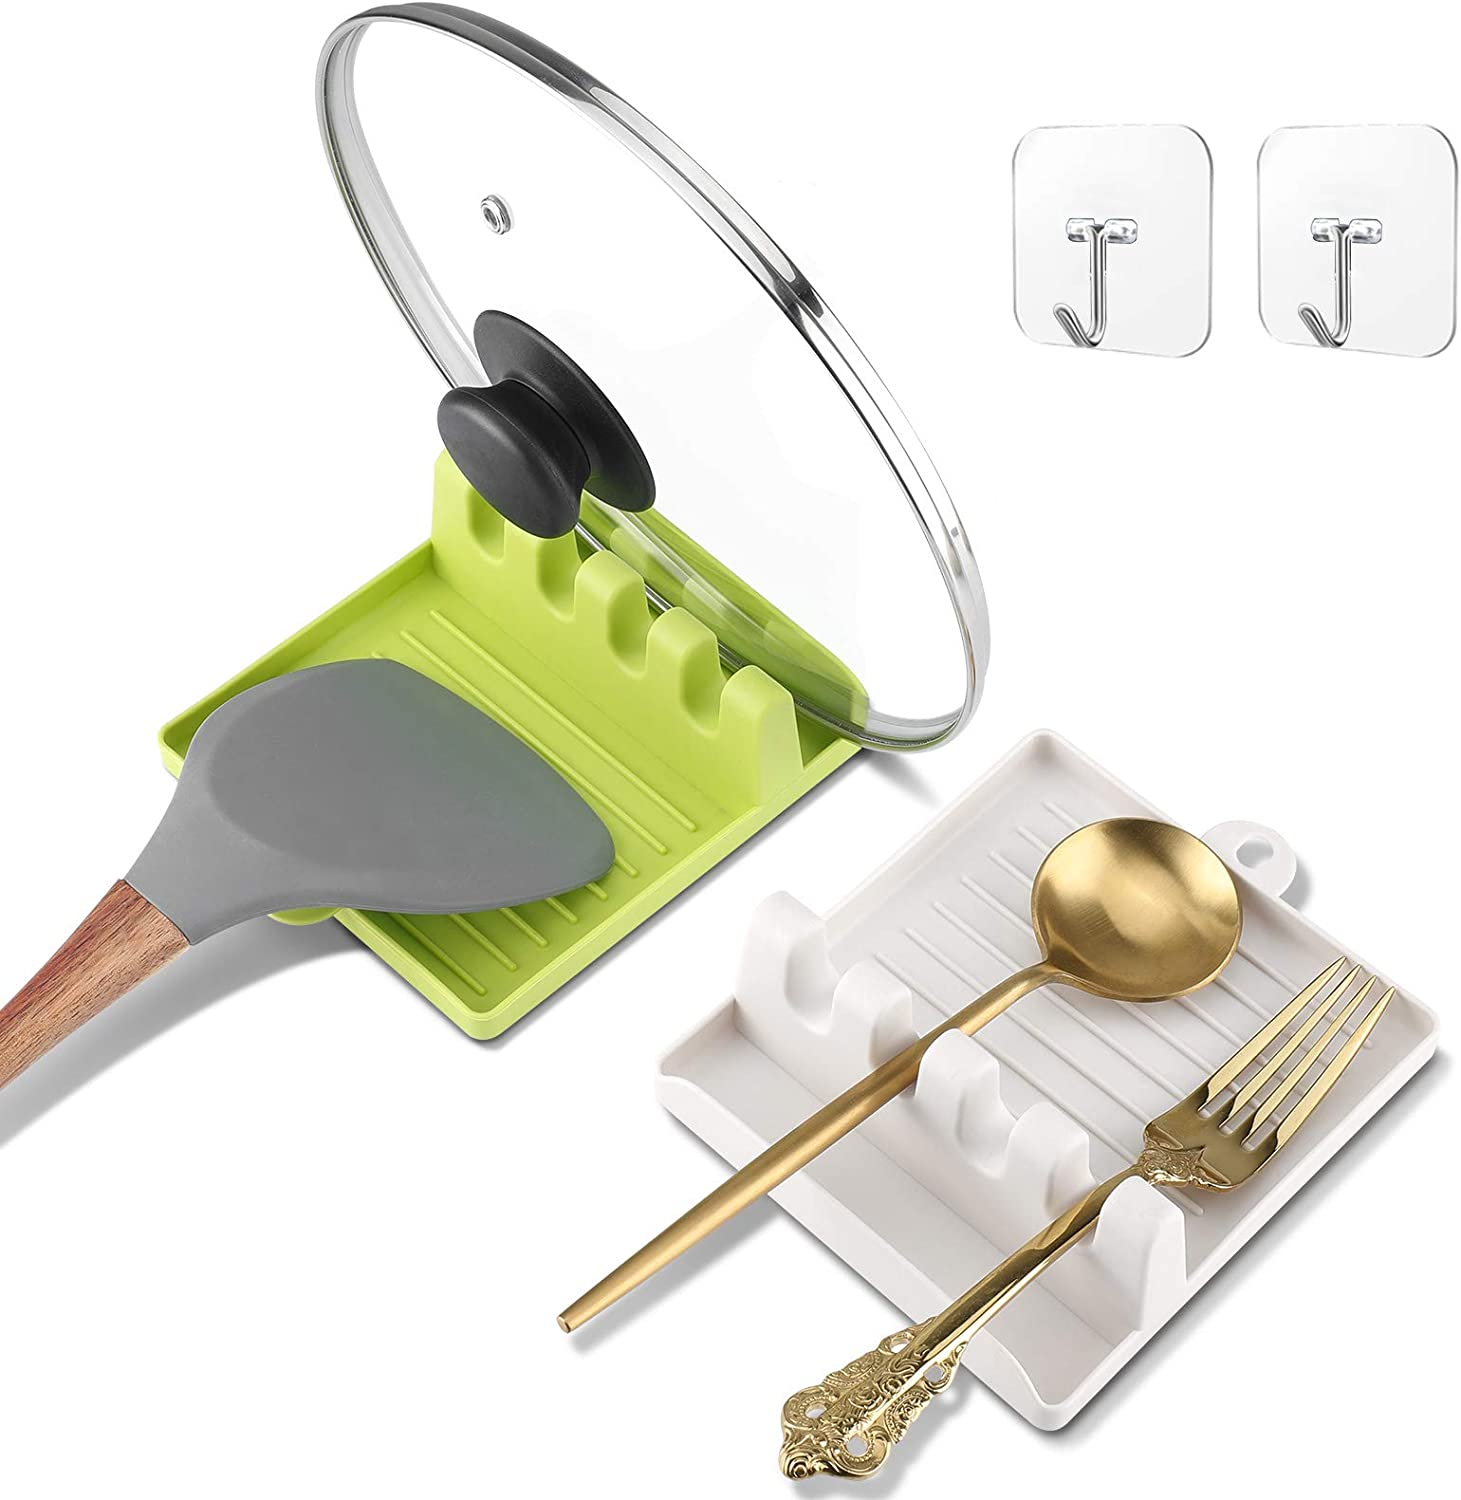 Spoon Rest For Stove Top With Drip Pad(Two Pack) - Kitchen Utensil Holder For Spoons, Food Safe Spoon Rest & Utensil Holder For Counter Top, Spoons, Ladles, Tongs